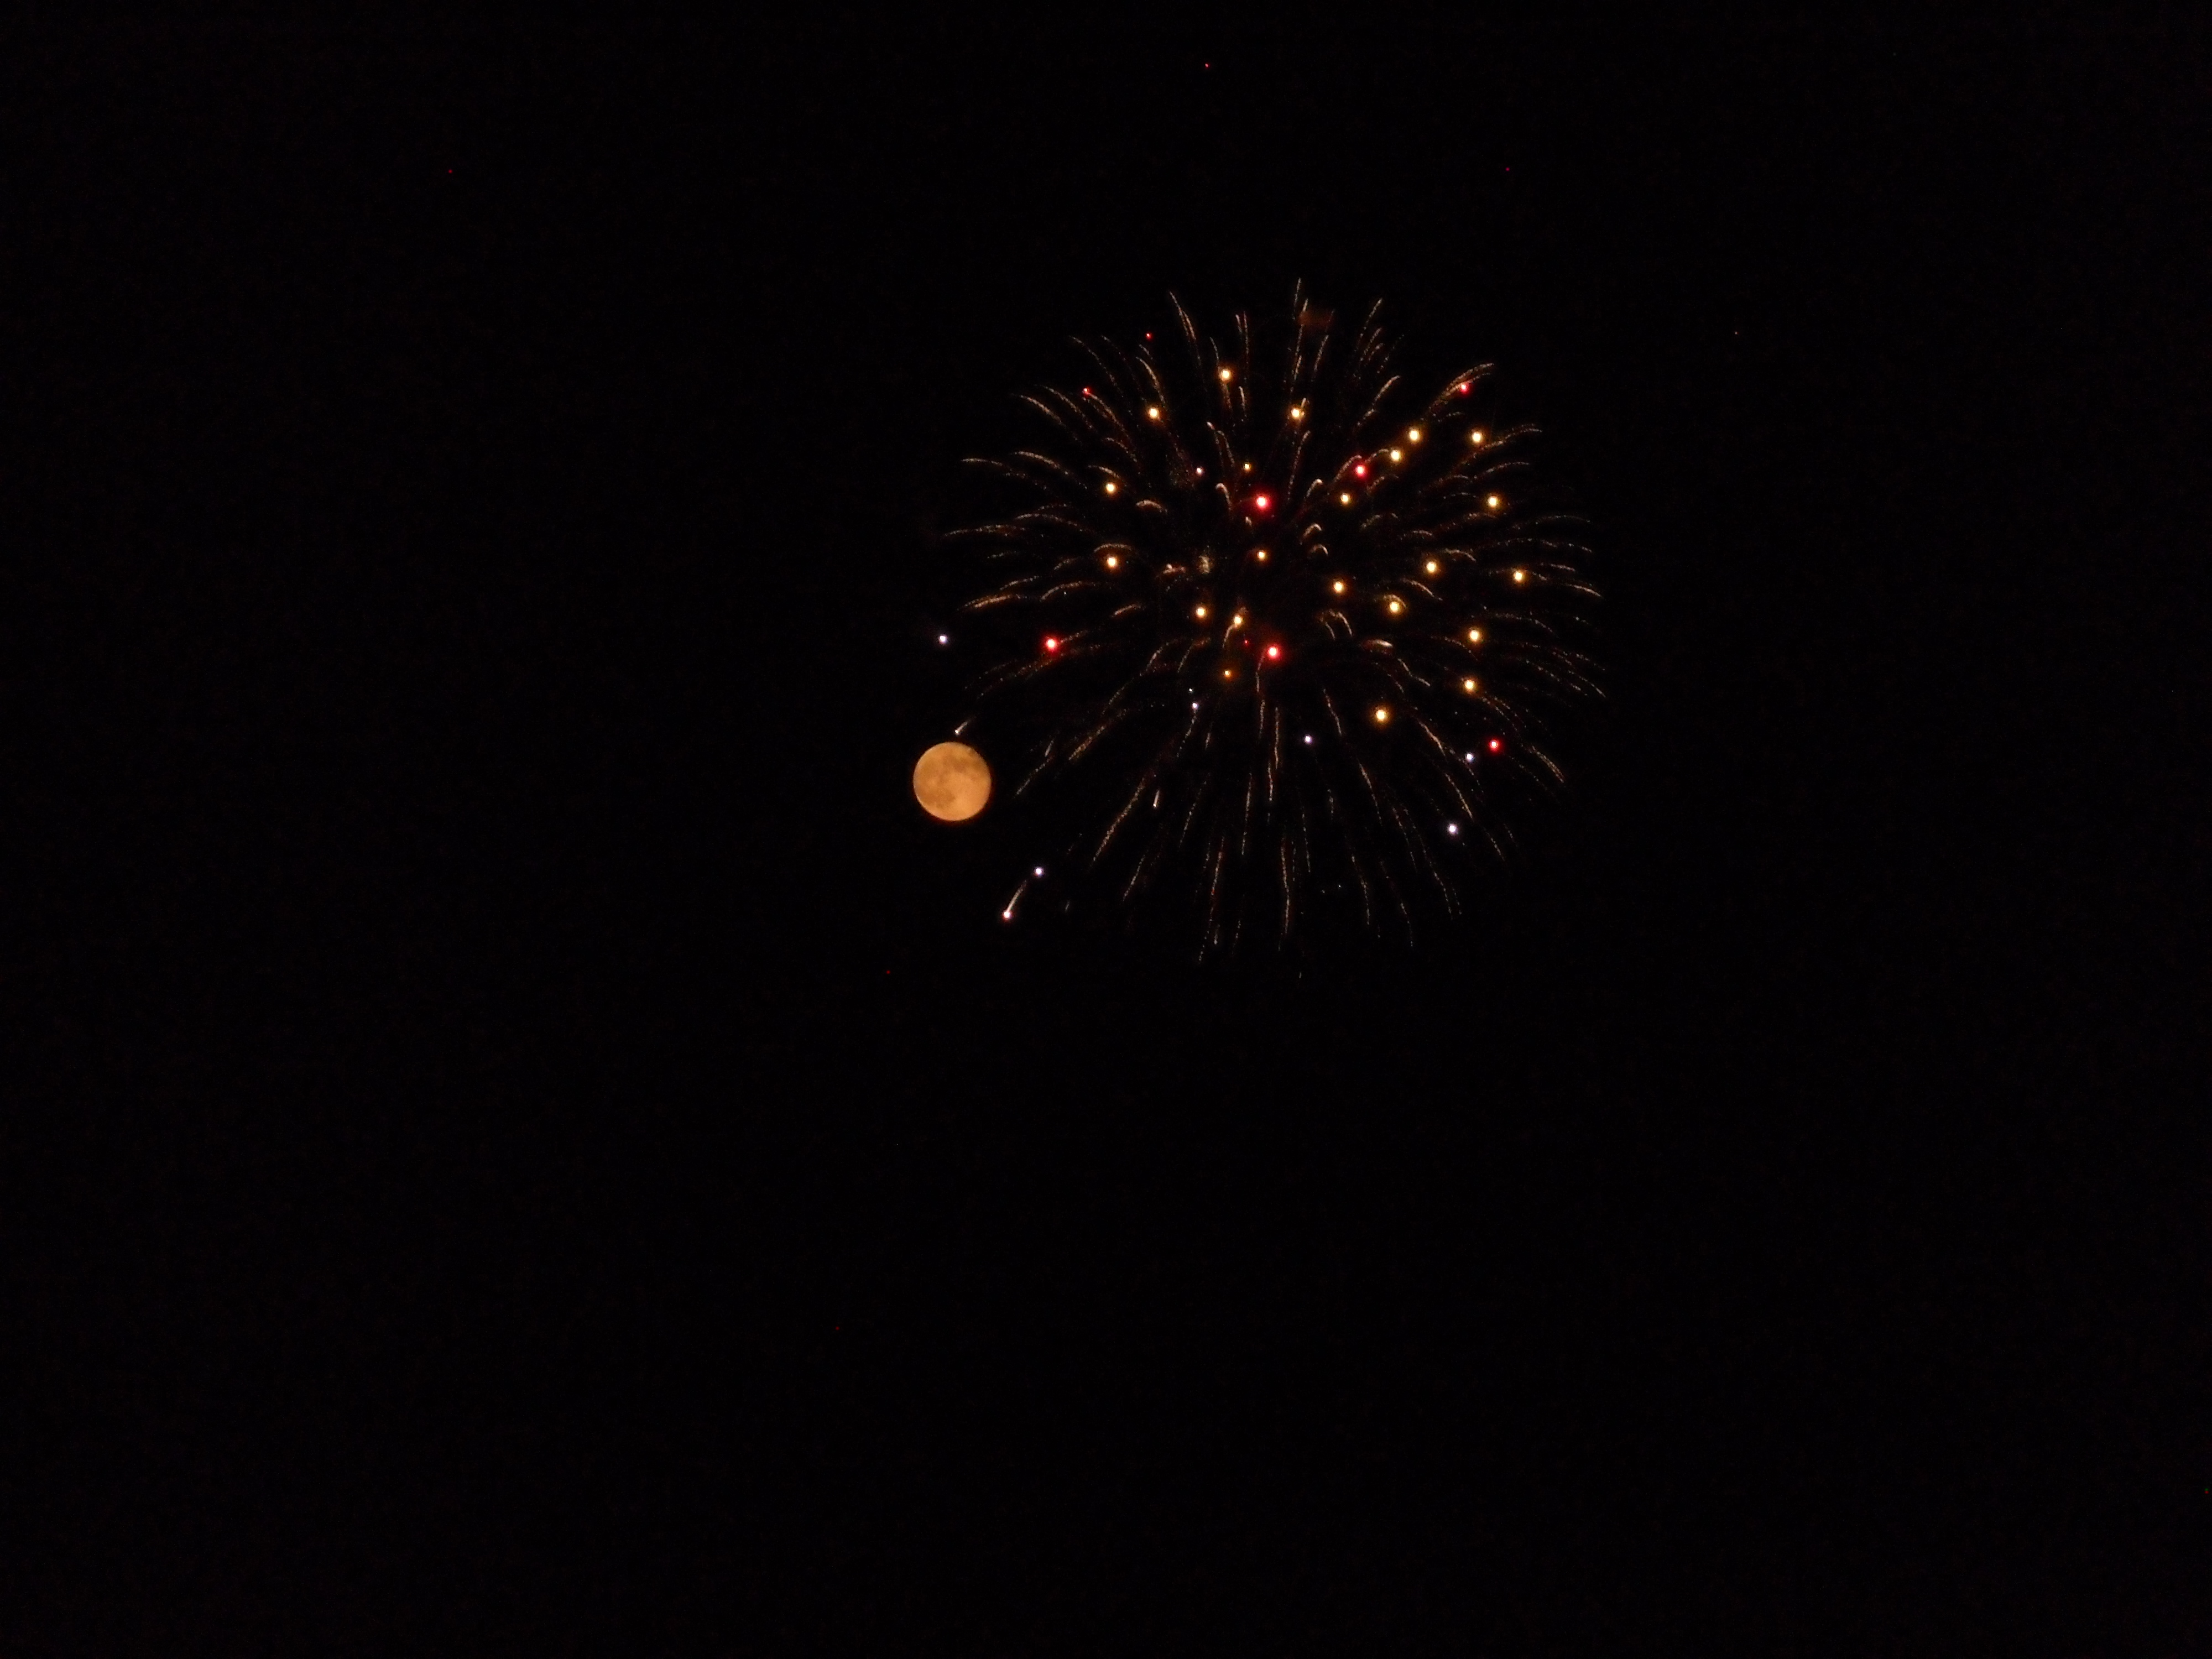 moon and fireworks